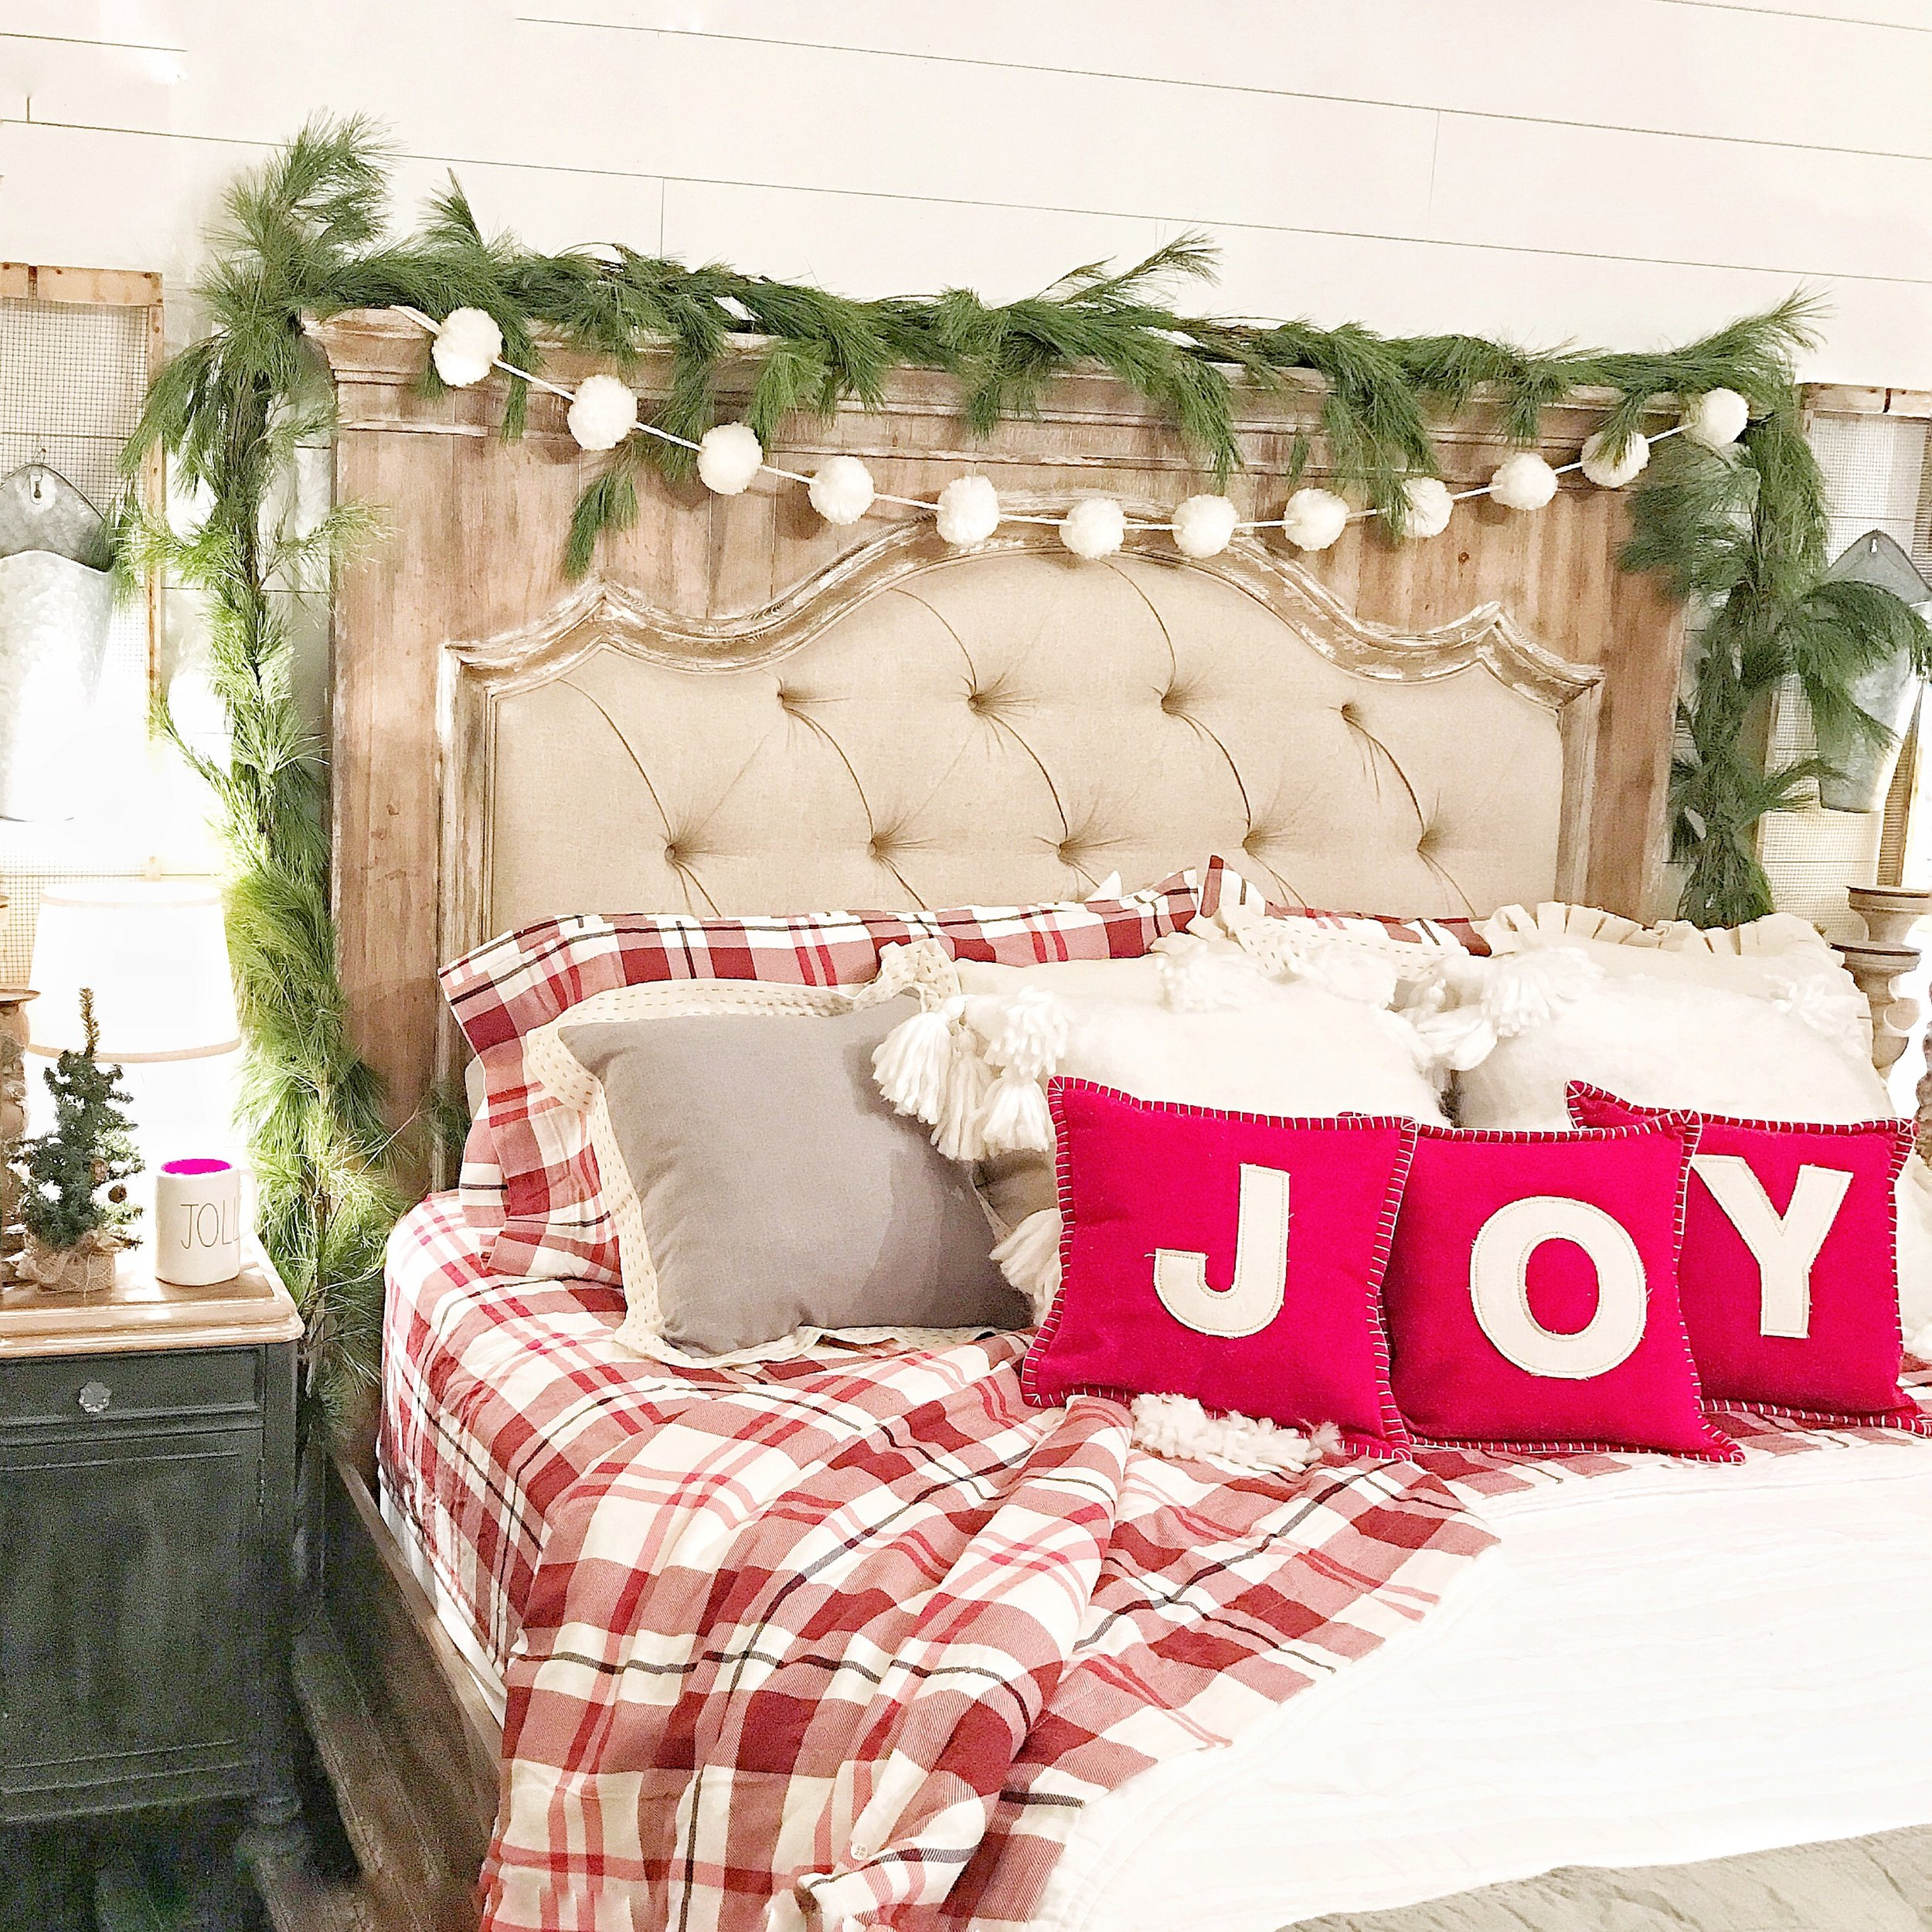 Farmhouse Christmas Bedroom Tour- Image Shared By Country Living Magazine- By Kayla Miller of Plum Pretty Decor and Design